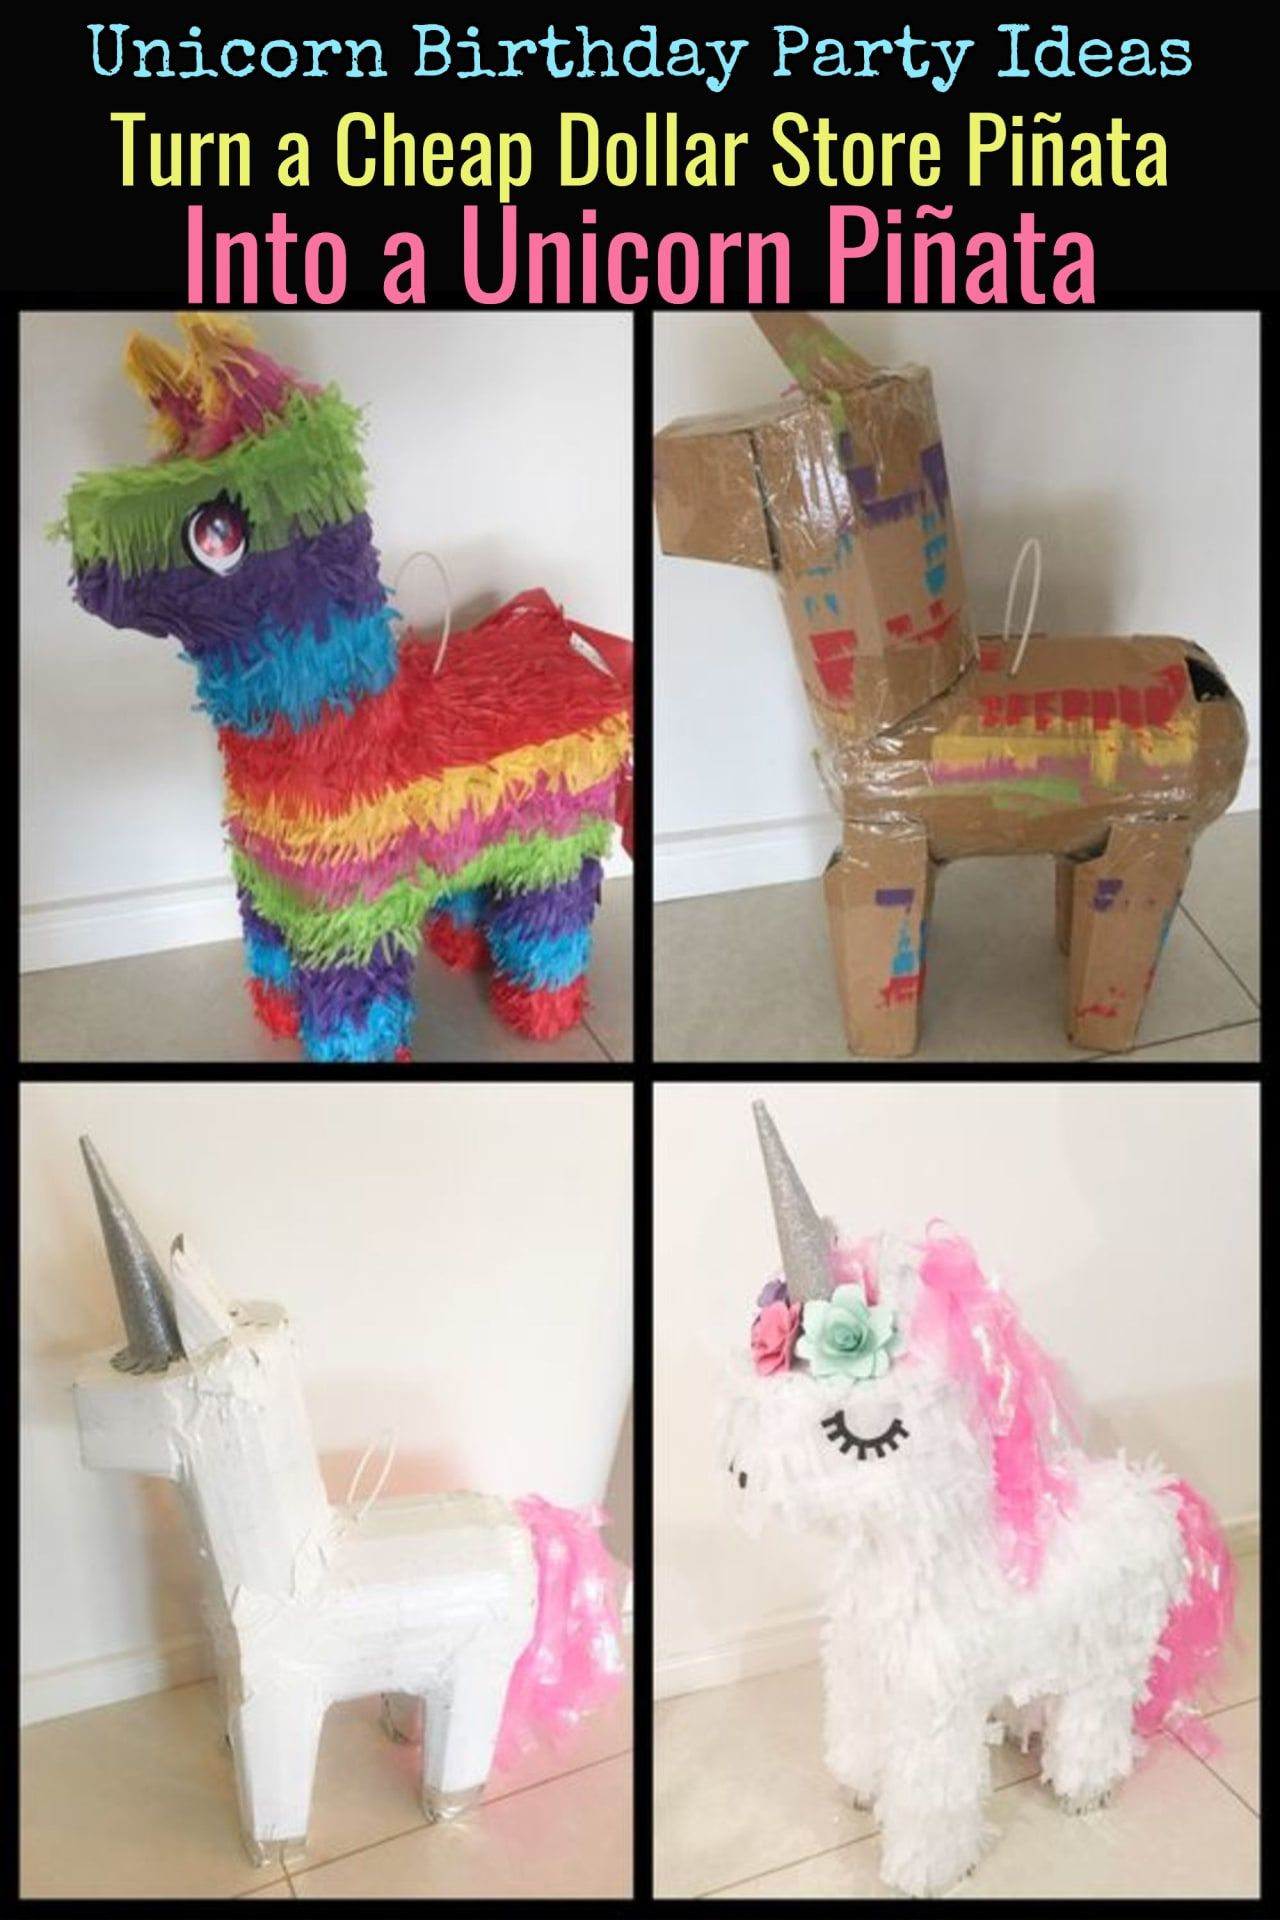 Unicorn Crafts for Kids  Cute & Easy DIY Unicorn Craft Ideas - Diy unicorn birthday party, Unicorn birthday party decorations, Diy unicorn party, Unicorn themed birthday party, Rainbow unicorn birthday party, Unicorn themed birthday - Fun and Easy Unicorn Craft Projects For Kids To Make • Whether it's a unicorn birthday party that you need craft ideas for or you want some easy unicorns crafts …